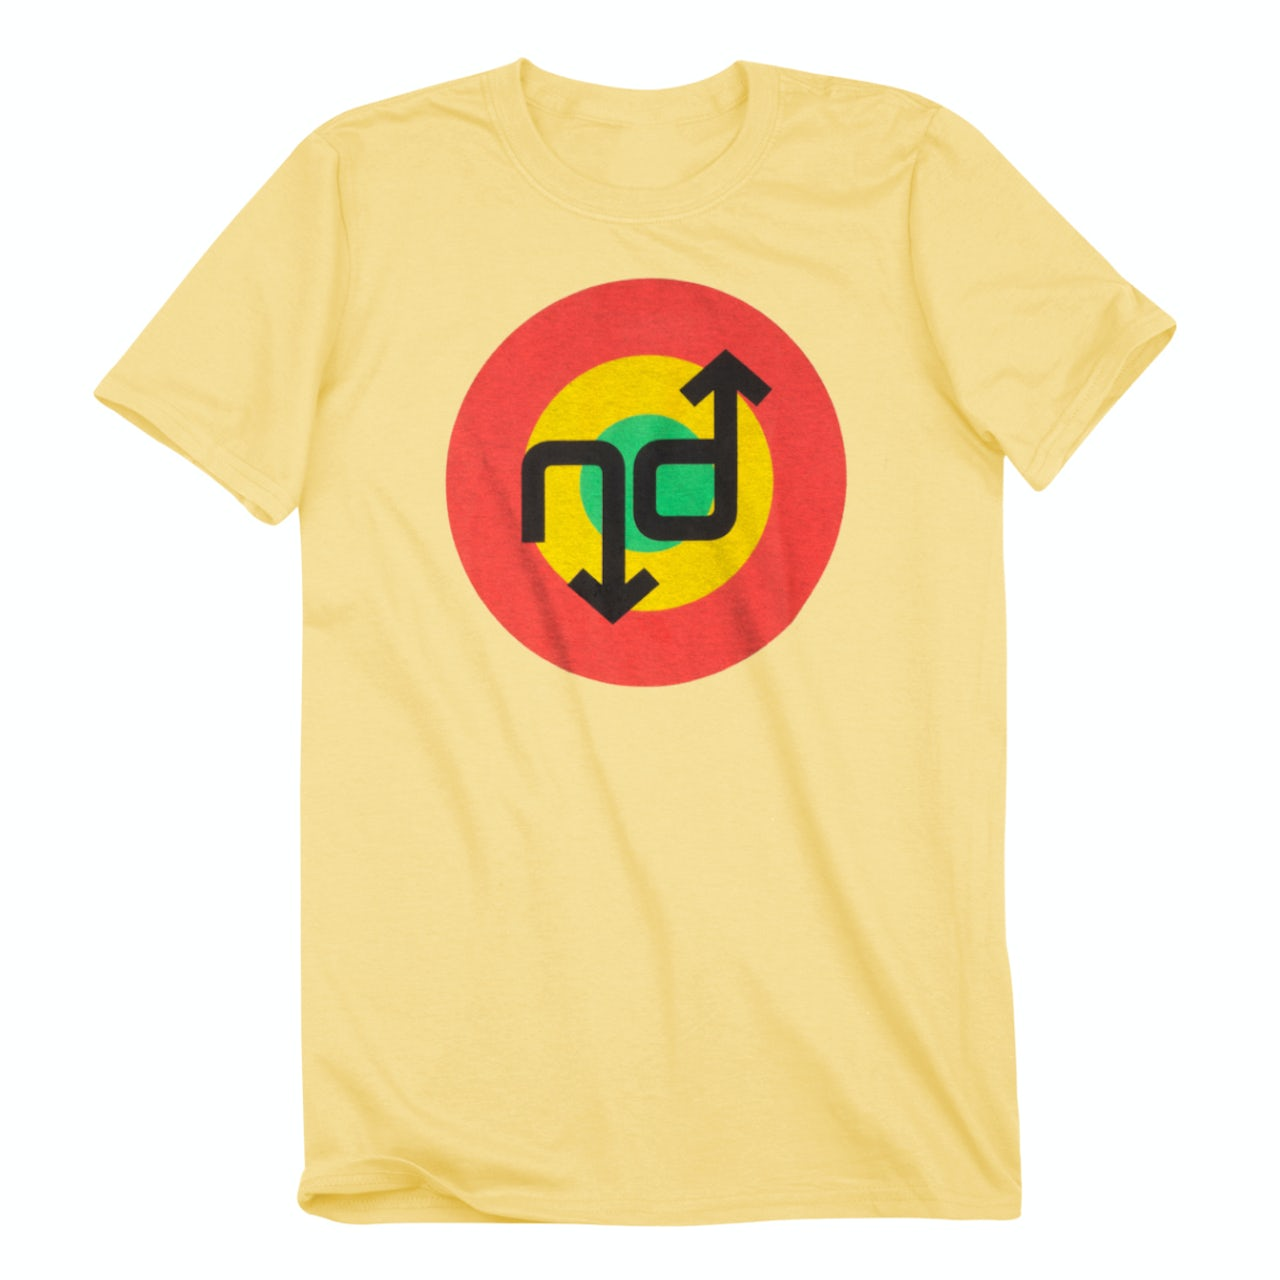 No Doubt Target Yellow T-Shirt